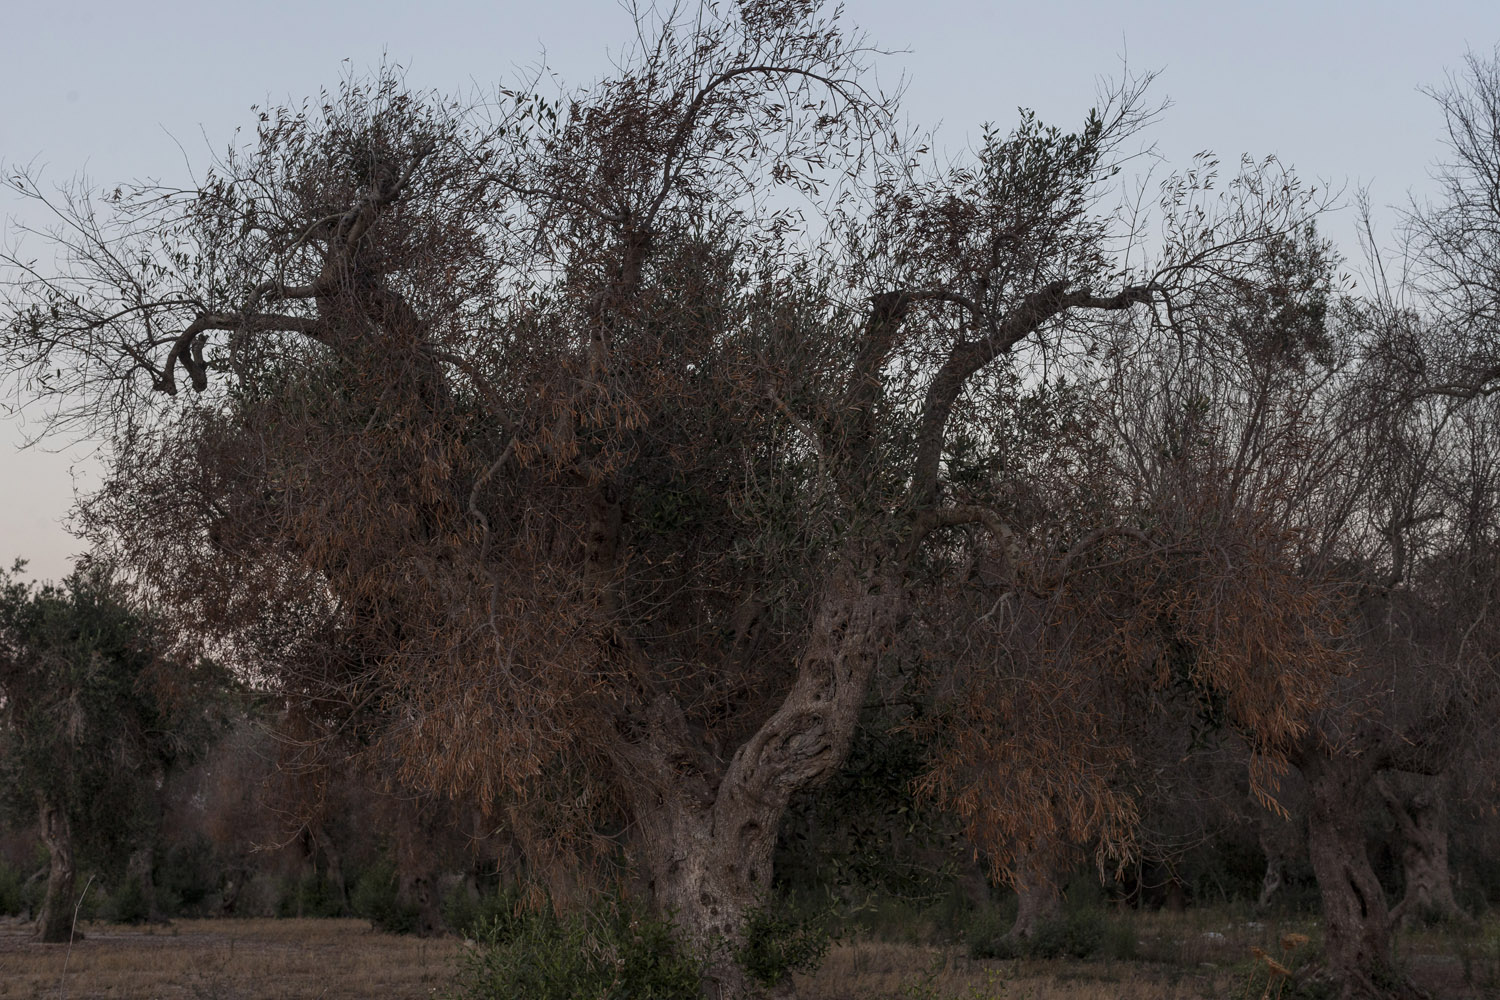 An olive tree affected by Xylella fastidiosa. It is becoming increasingly hard to find non-affected trees in Salento, with symptoms appearing as far as 80 km away from the initial outbreak. And yet there are still some healthy olive trees, whether because they are of the Leccino variety, which appears to be able to withstand the bacteria, or because of some other reason that we still don't understand.